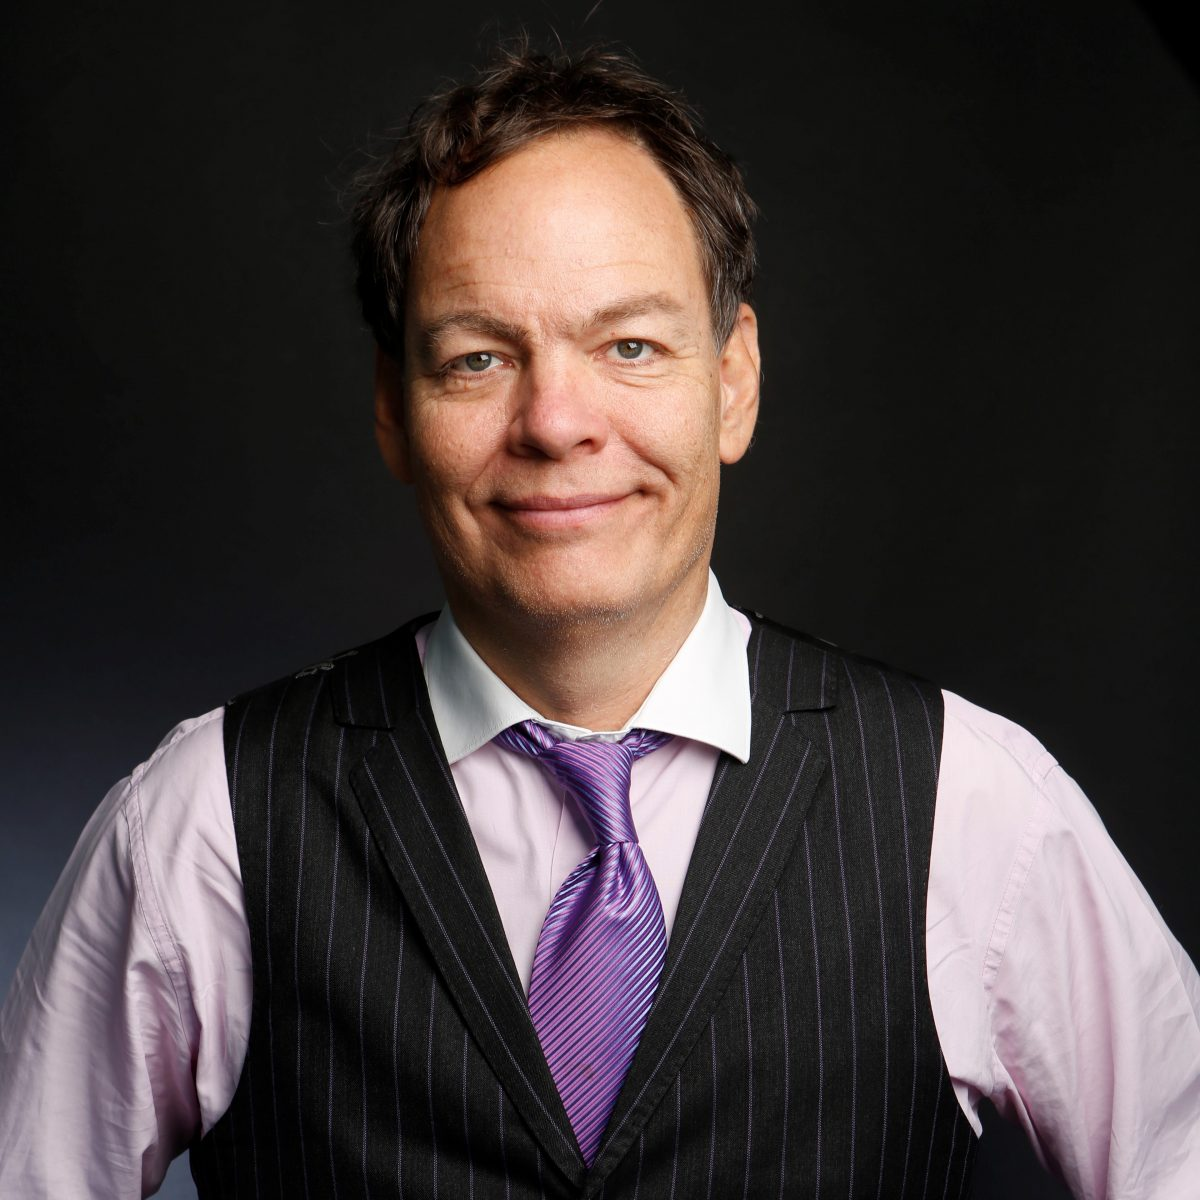 Max Keiser Reaffirms $100k Bitcoin Price Prediction